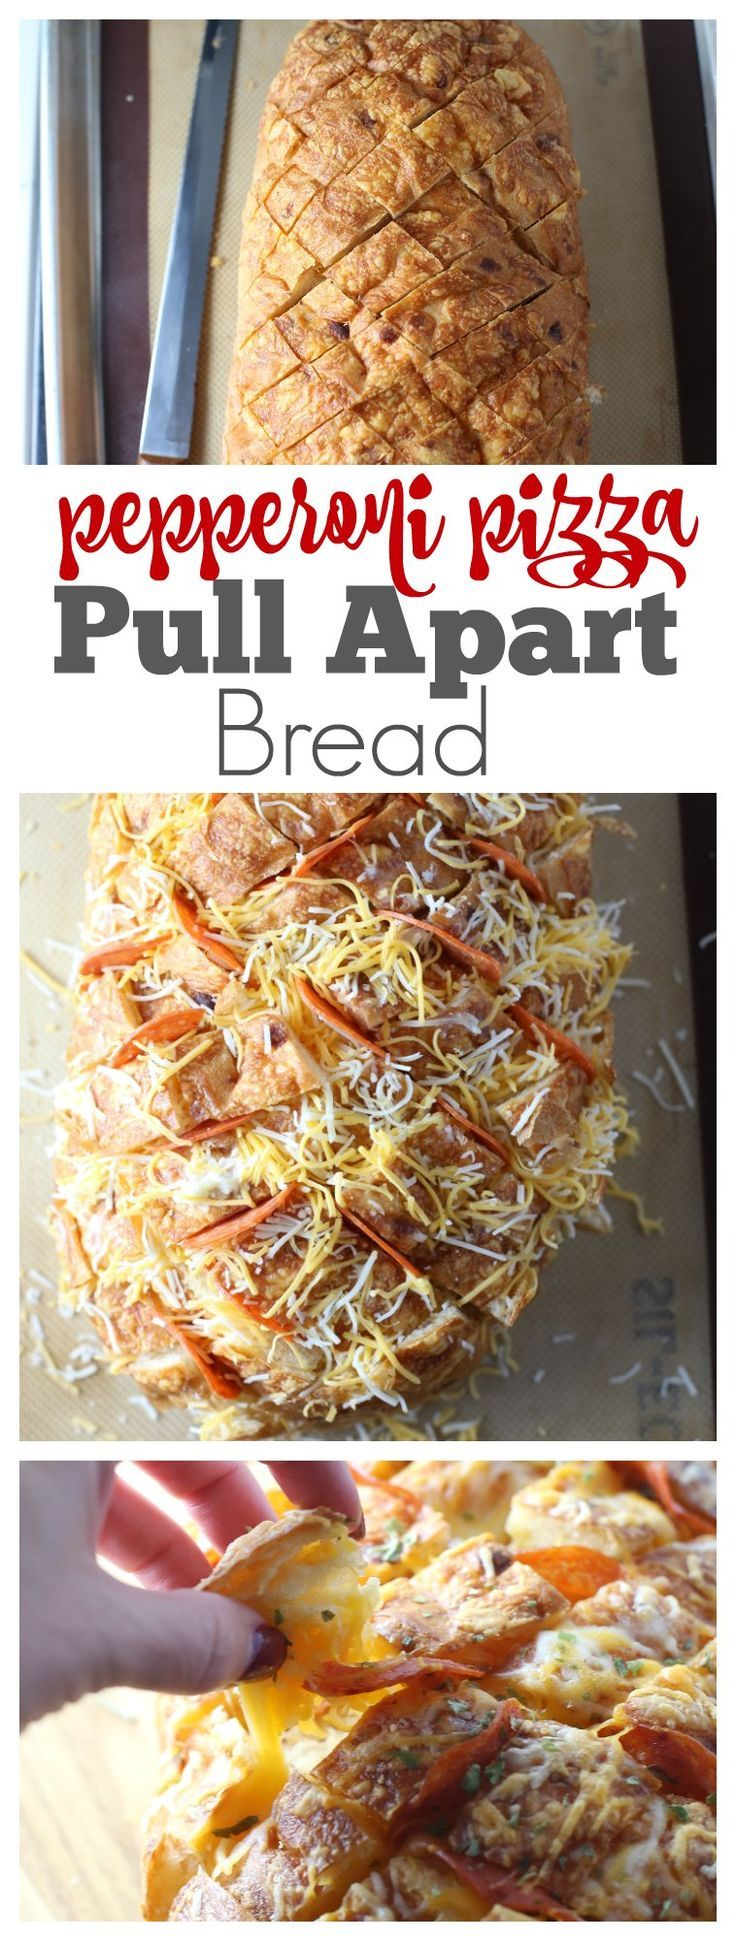 Cheesy Pizza Pull-a-part Garlic Bread with Pepperoni